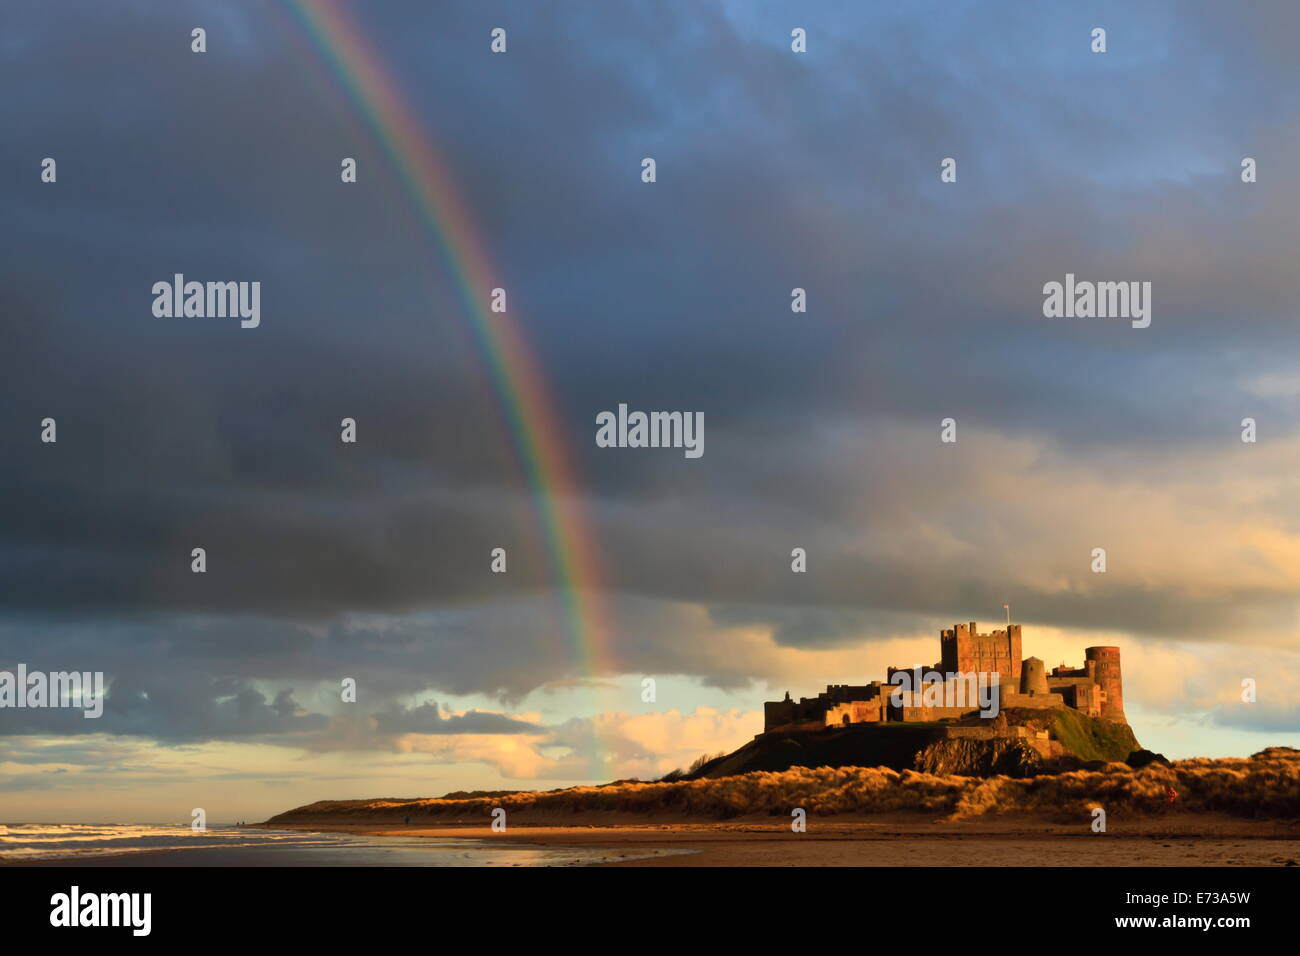 Rainbow's end at Bamburgh Castle, Bamburgh, Northumberland, England, United Kingdom, Europe - Stock Image